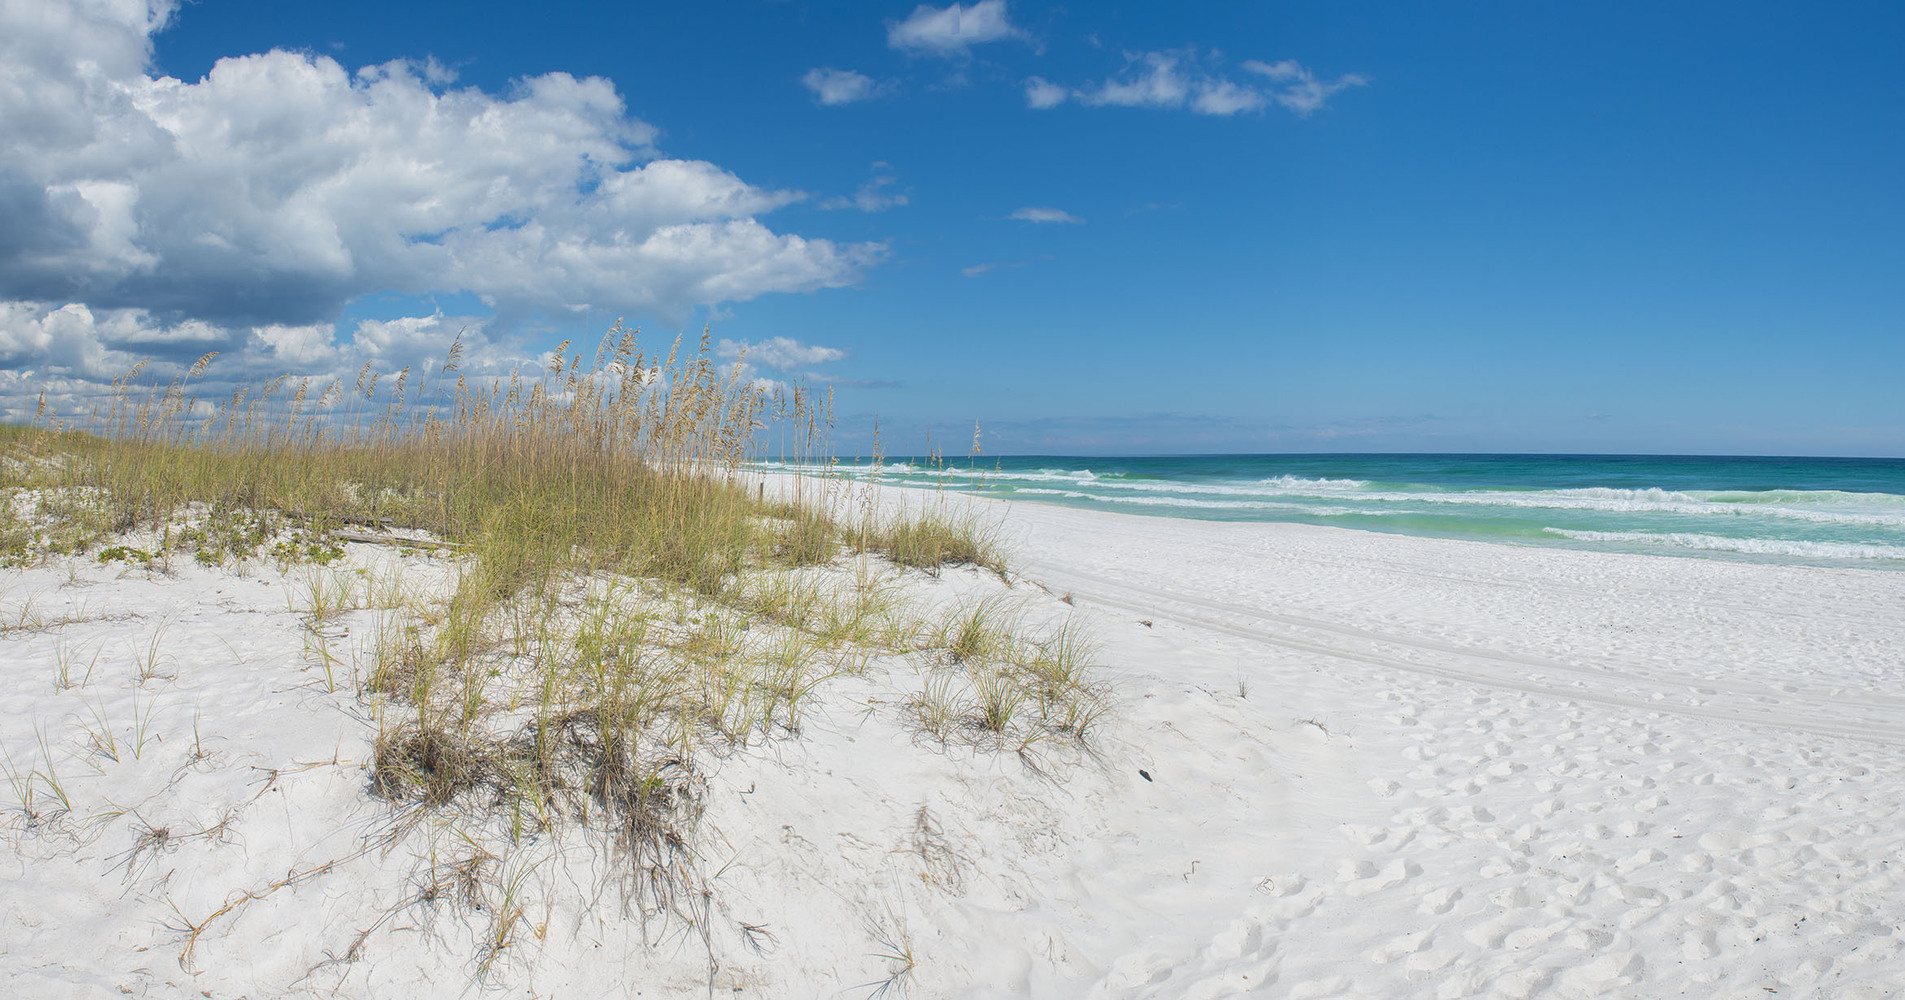 The beautiful white sands of Pensacola Beach